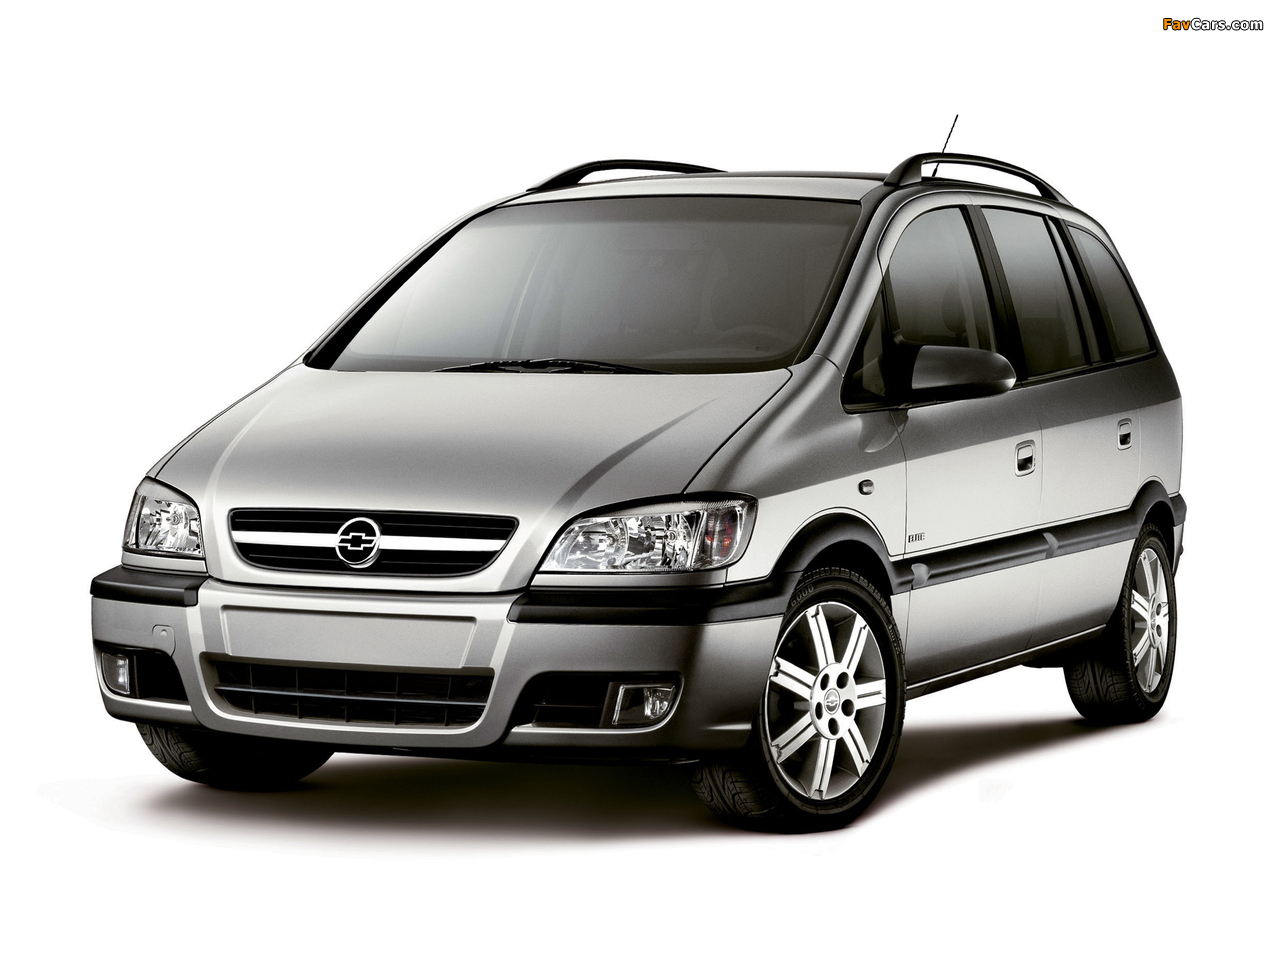 Chevrolet Zafira (A) 2004–12 pictures (1280 x 960)